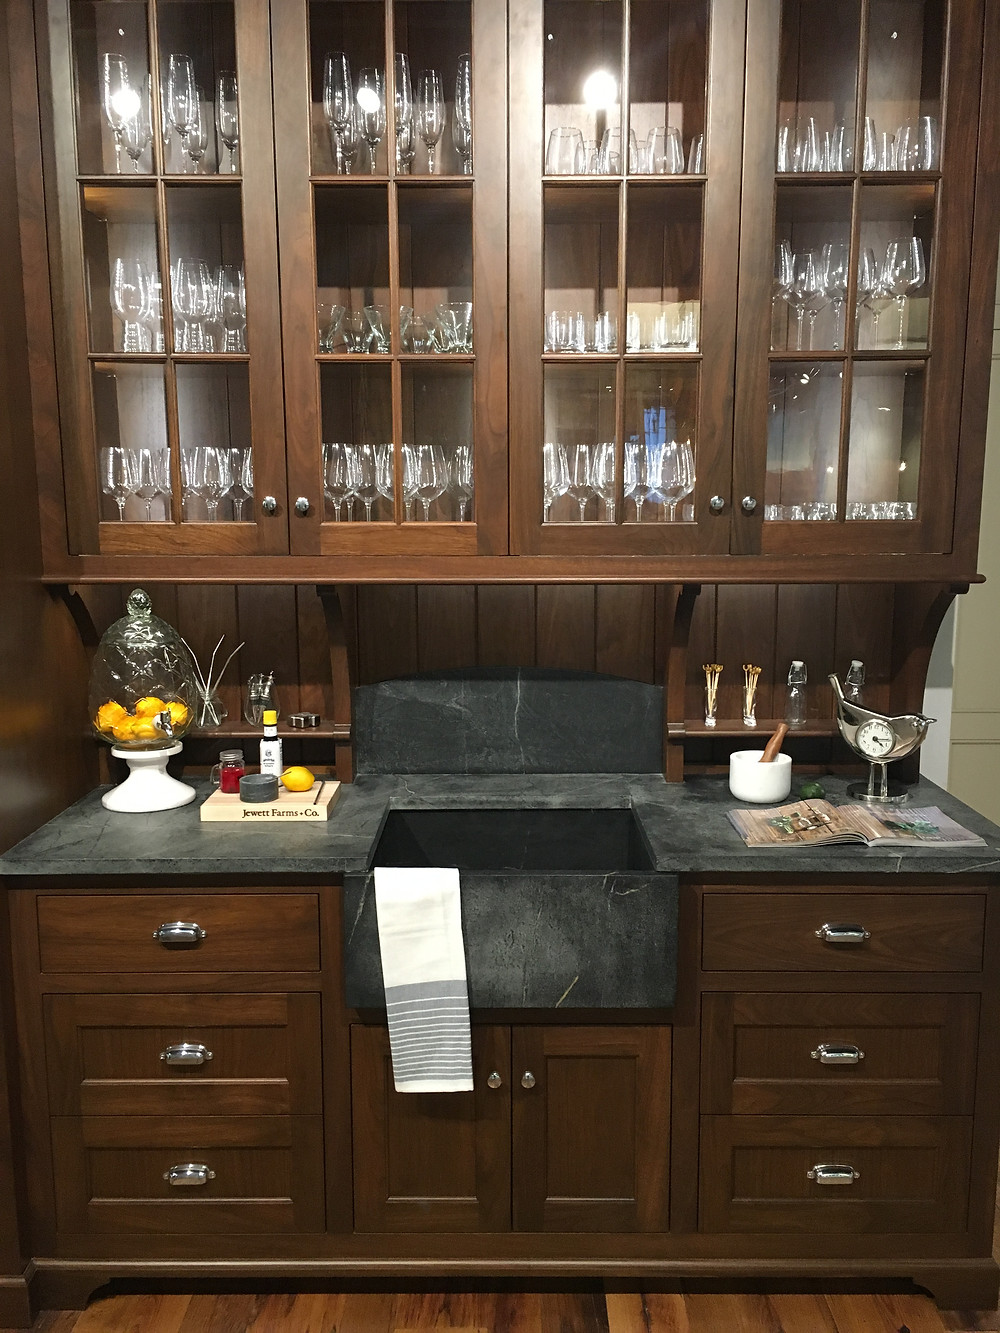 Warm wood cabinetry with soapstone sink and countertop.